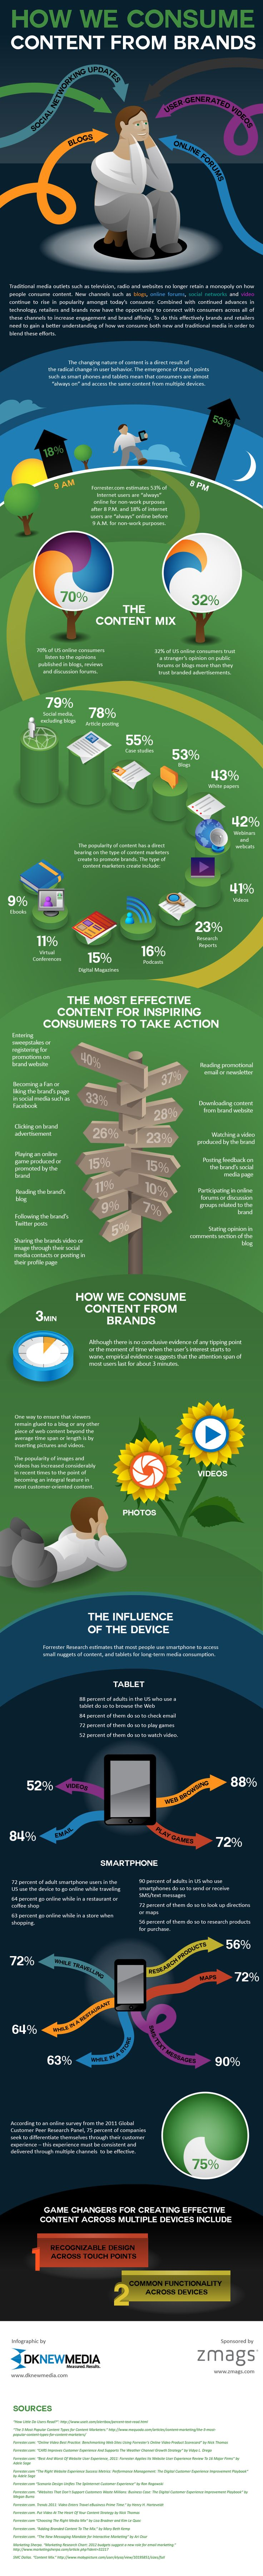 Make sure the top 3 are in you marketing plan in 2013...How Do We Consume Content From Brands? [INFOGRAPHIC]